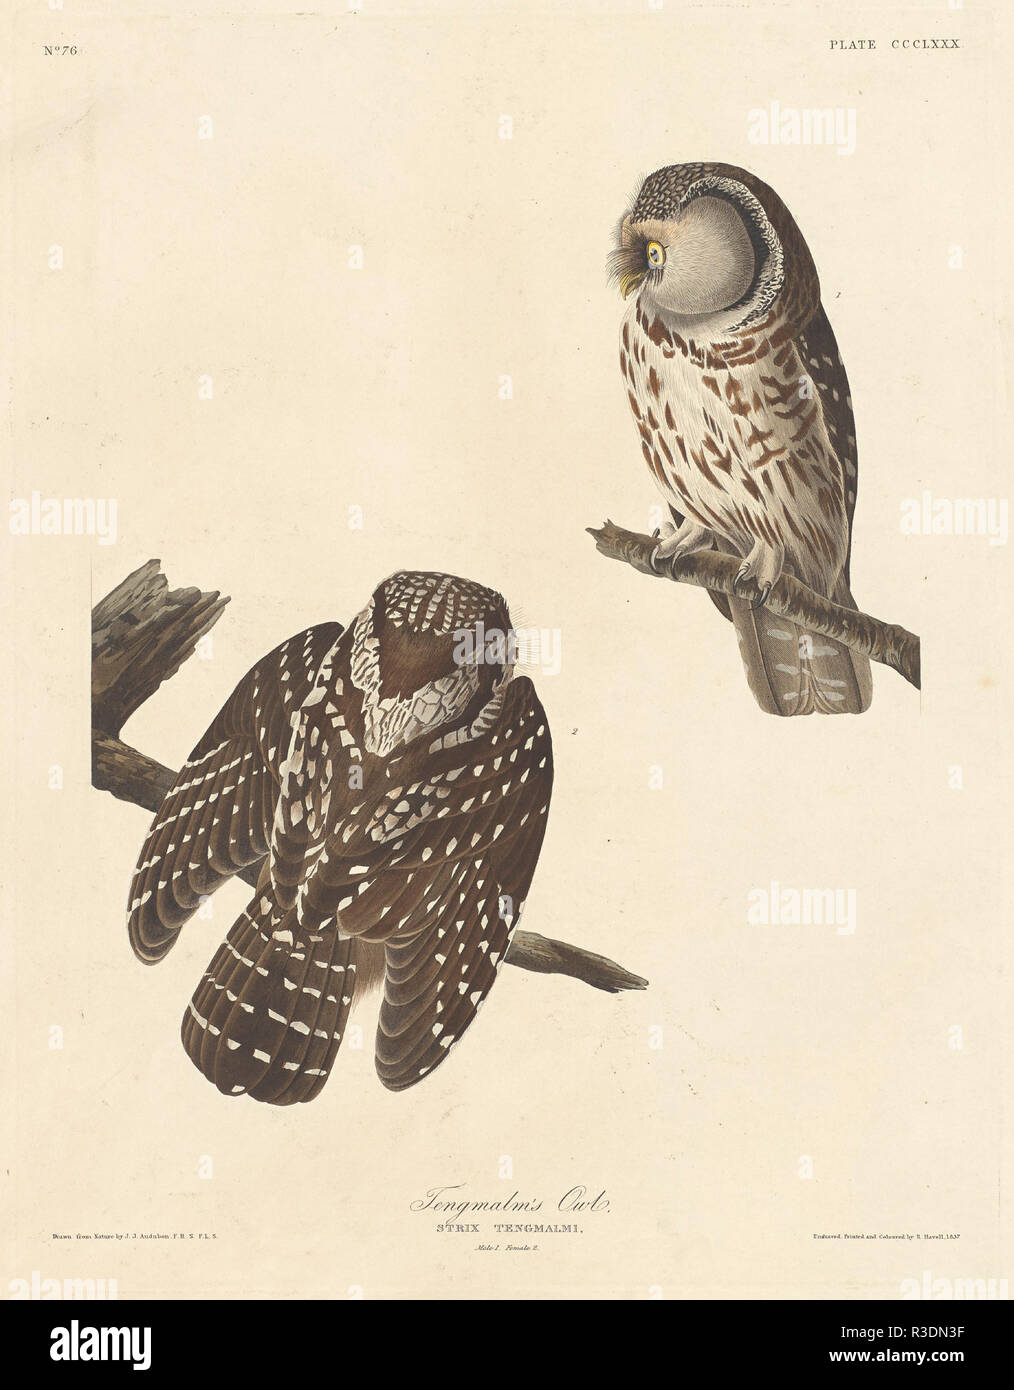 Tengmalm's Owl. Stand: 1837. Medium: Handcolorierte Radierung und Aquatinta auf Whatman Papier. Museum: Nationalgalerie, Washington DC. Autor: Robert Havell nach John James Audubon. AUDUBON, John James. Stockbild